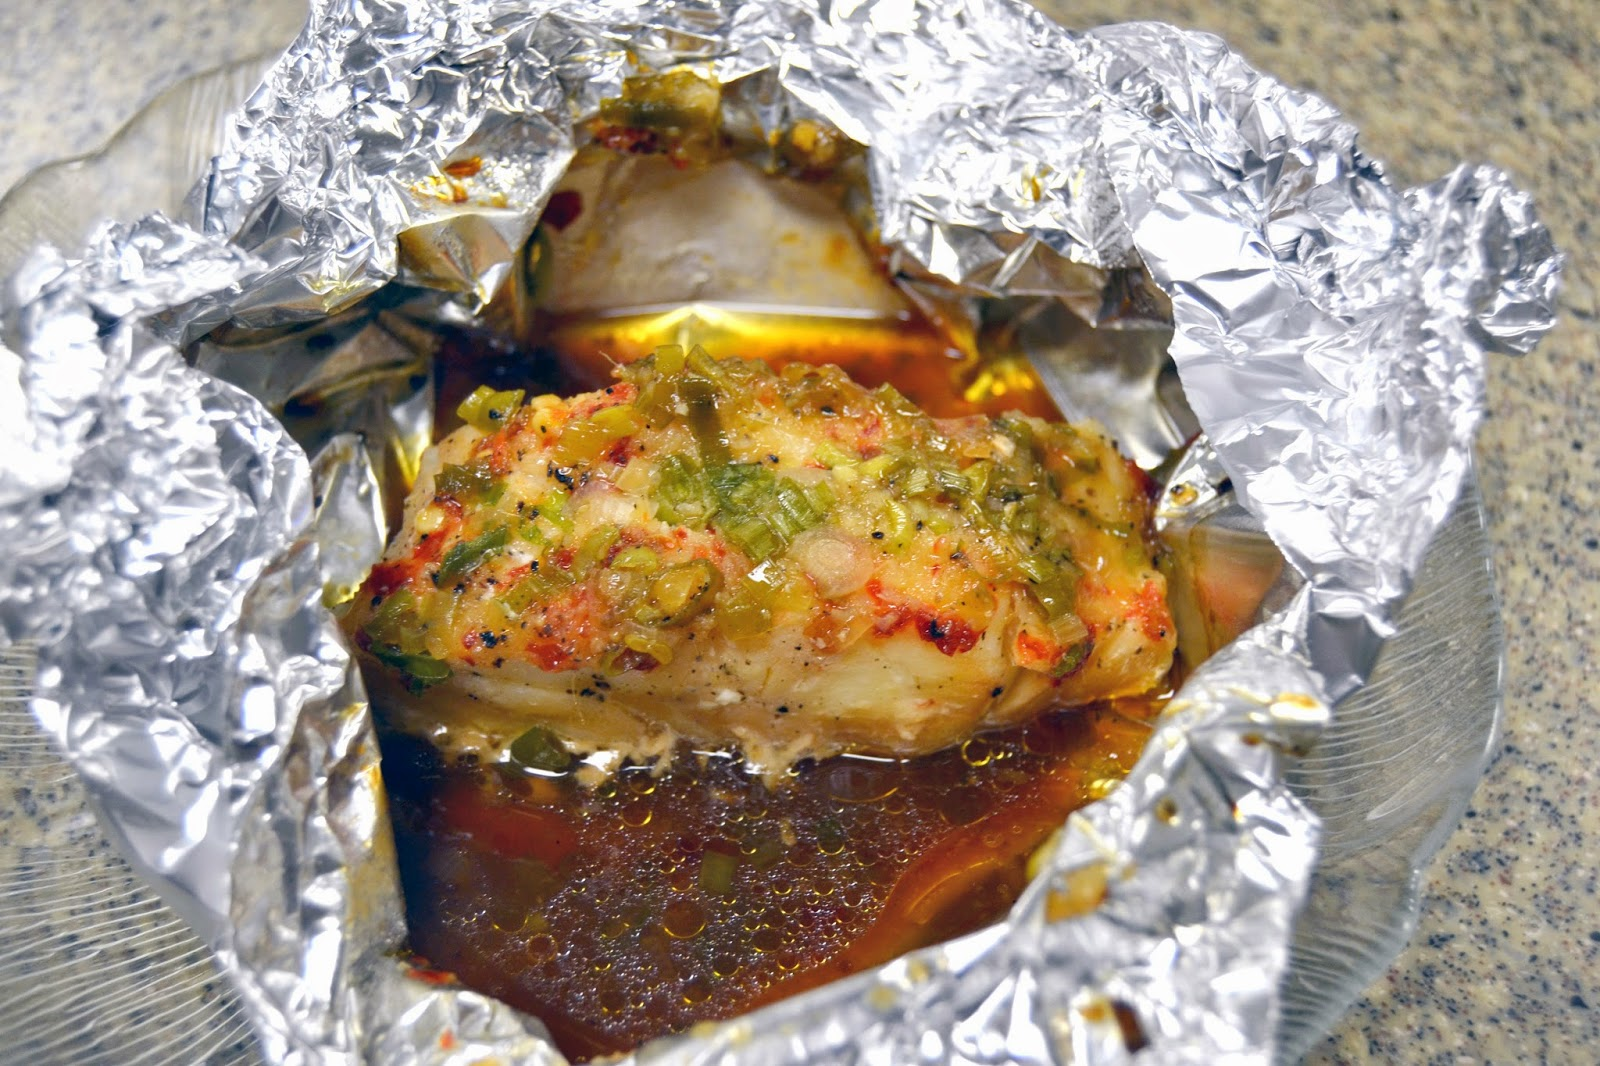 Jungle jim 39 s food for thought spicy sea bass packets for Cooking fish in foil